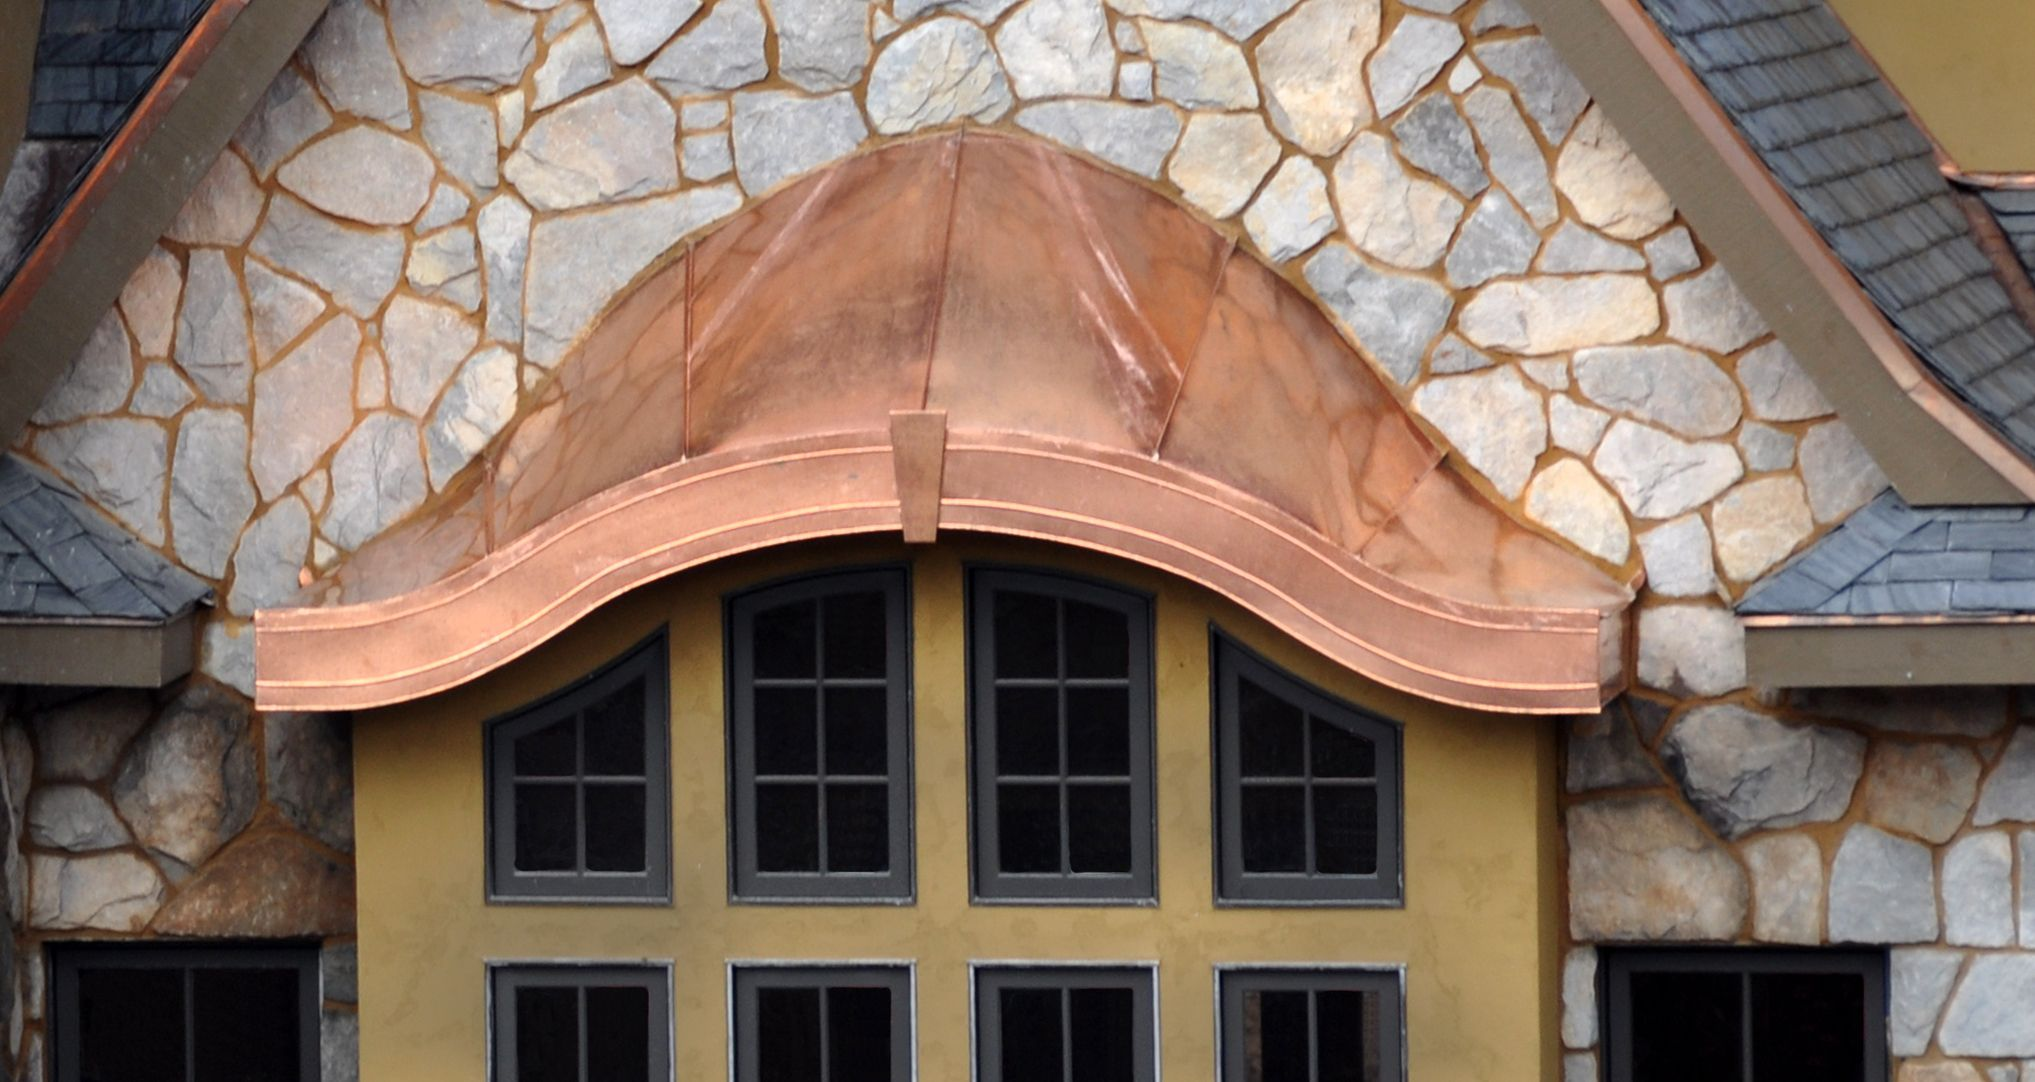 Eye Brow Copper Roof Fun Whimsical Architecture